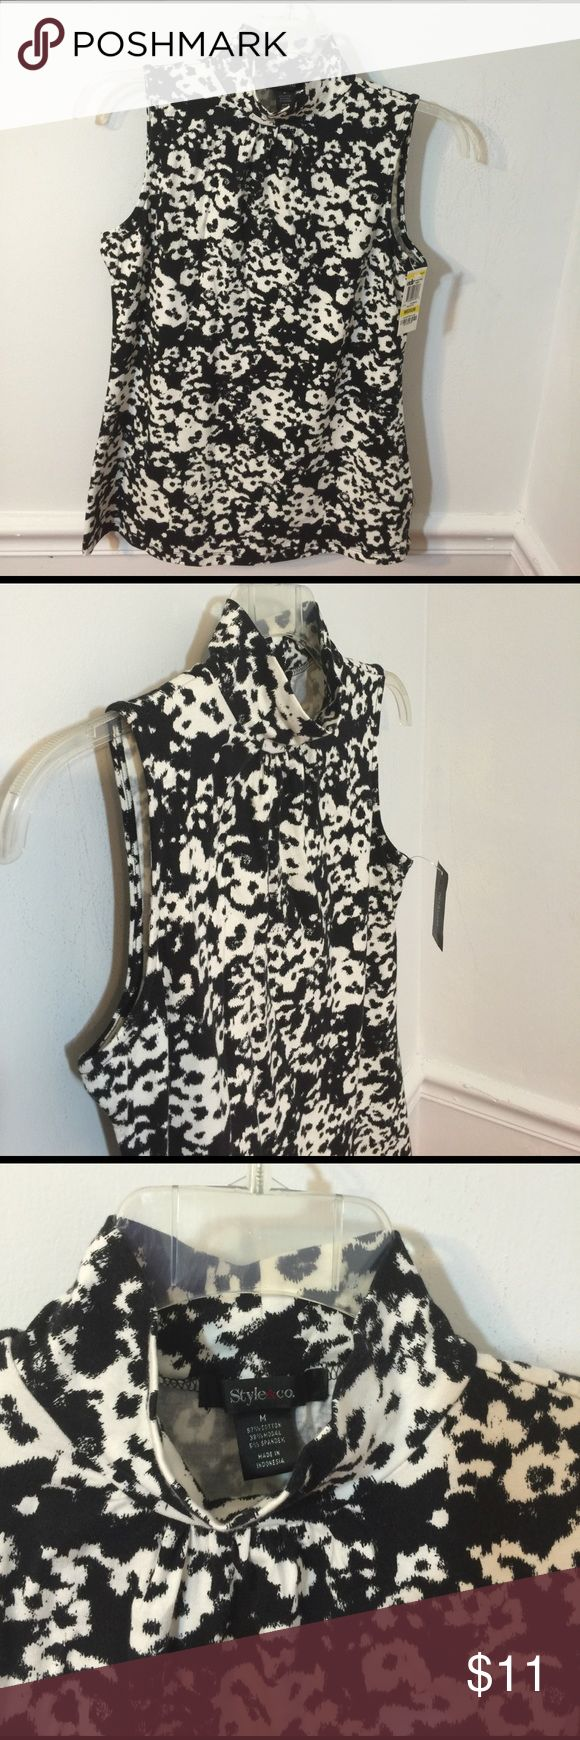 """Style&co M Sleeveless Turtleneck Top Black&White NWT Style&co ~Medium~ Sleeveless Loose Turtleneck Top Black & White Gorgeous NEW  Armpit to Armpit measures 17.5"""" (stretchy material)  Length is 26""""  Comes from a smoke and pet free environment Style&Co Tops Tees - Short Sleeve"""